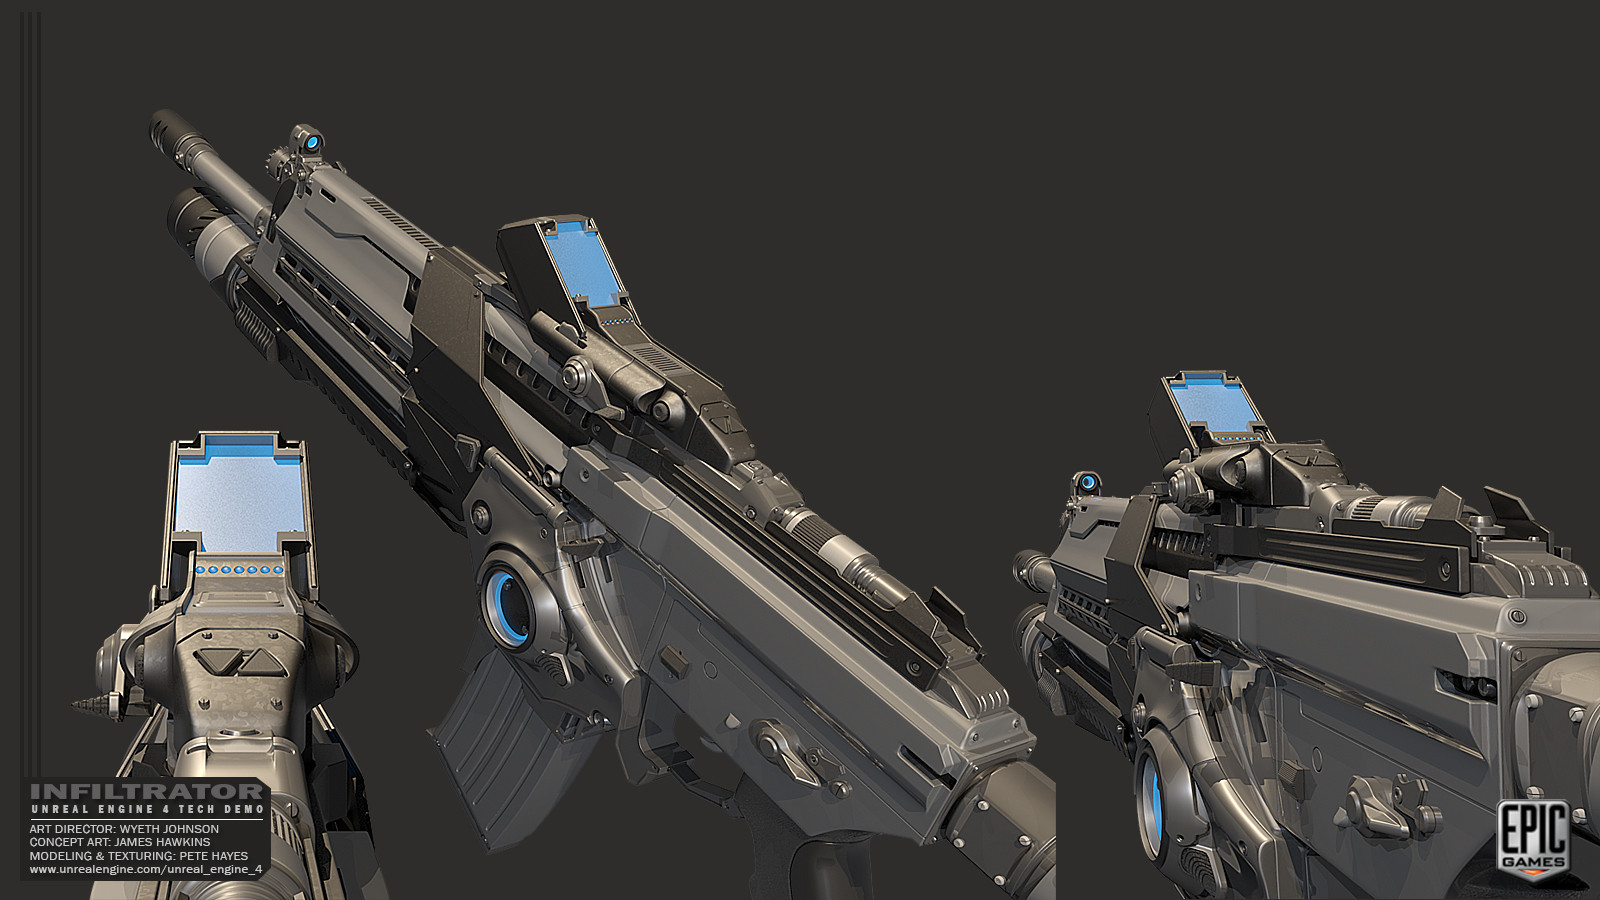 ArtStation - Infiltrator Unreal Demo - Weapons, Pete Hayes